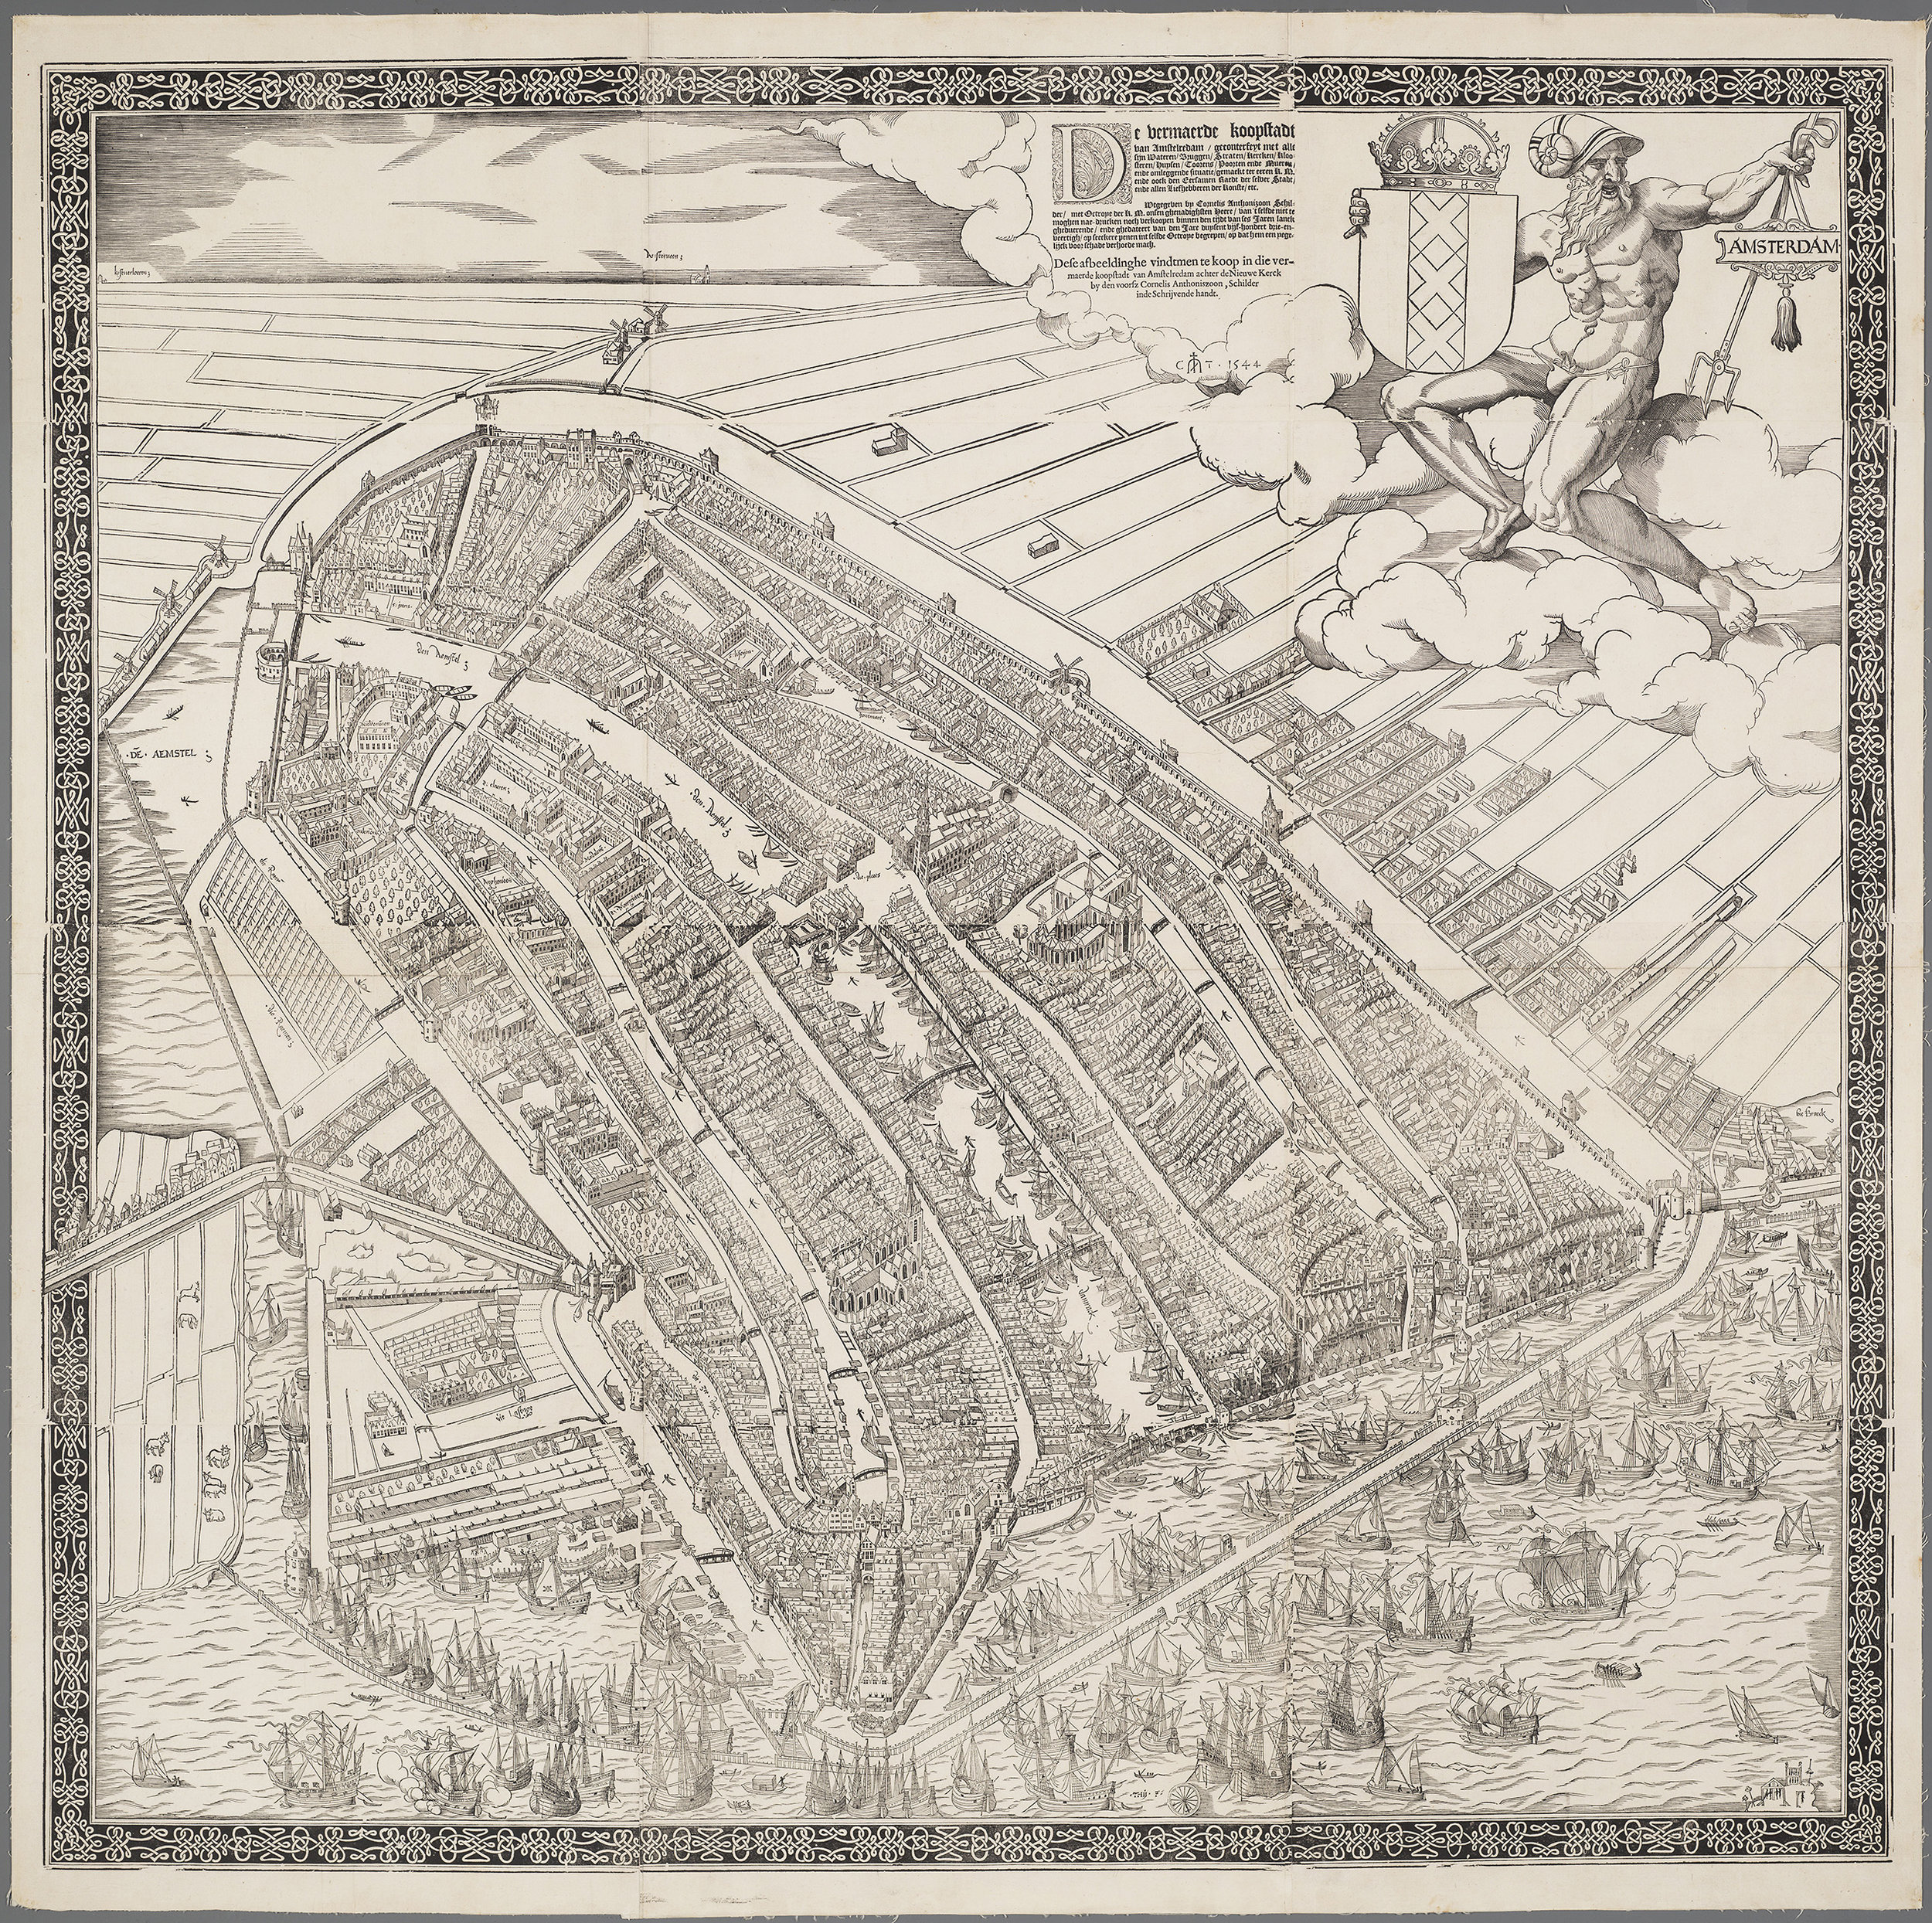 Part 3: Construction of the Wall (1653-1663) - Amsterdam in 1544, the model for New Amsterdam. Walled cities were common in Holland, and a military man such as General Stuyvesant would have been versed in their construction. How was the wall really built?